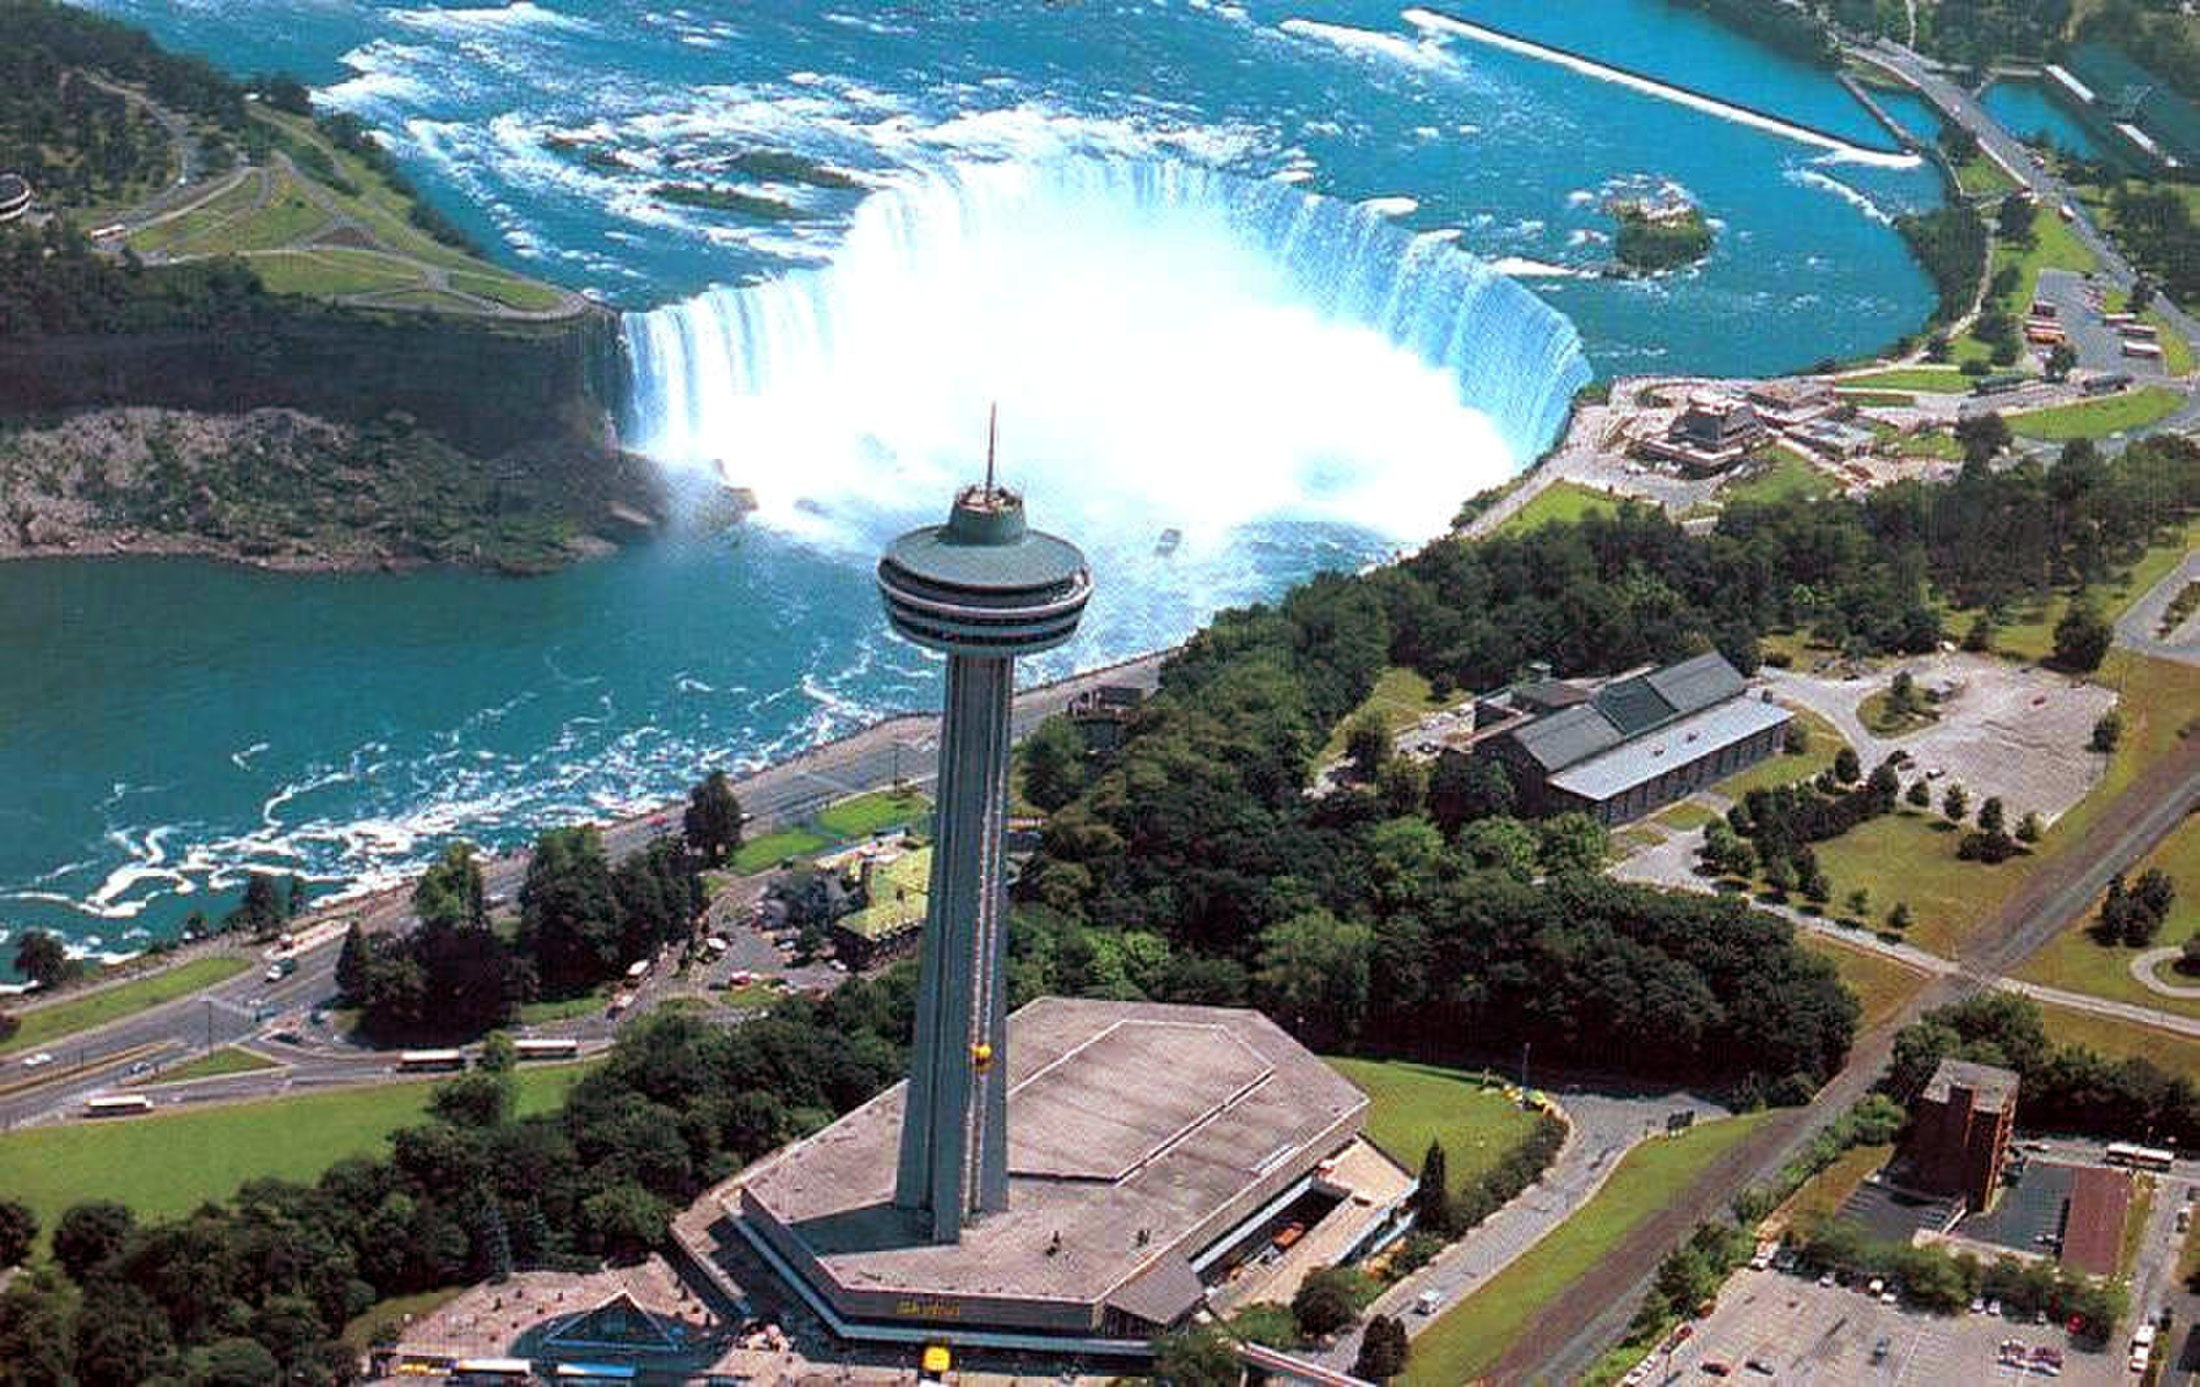 A Great View of Your Niagara Falls Surroundings at the Skylon Tower (Canada)